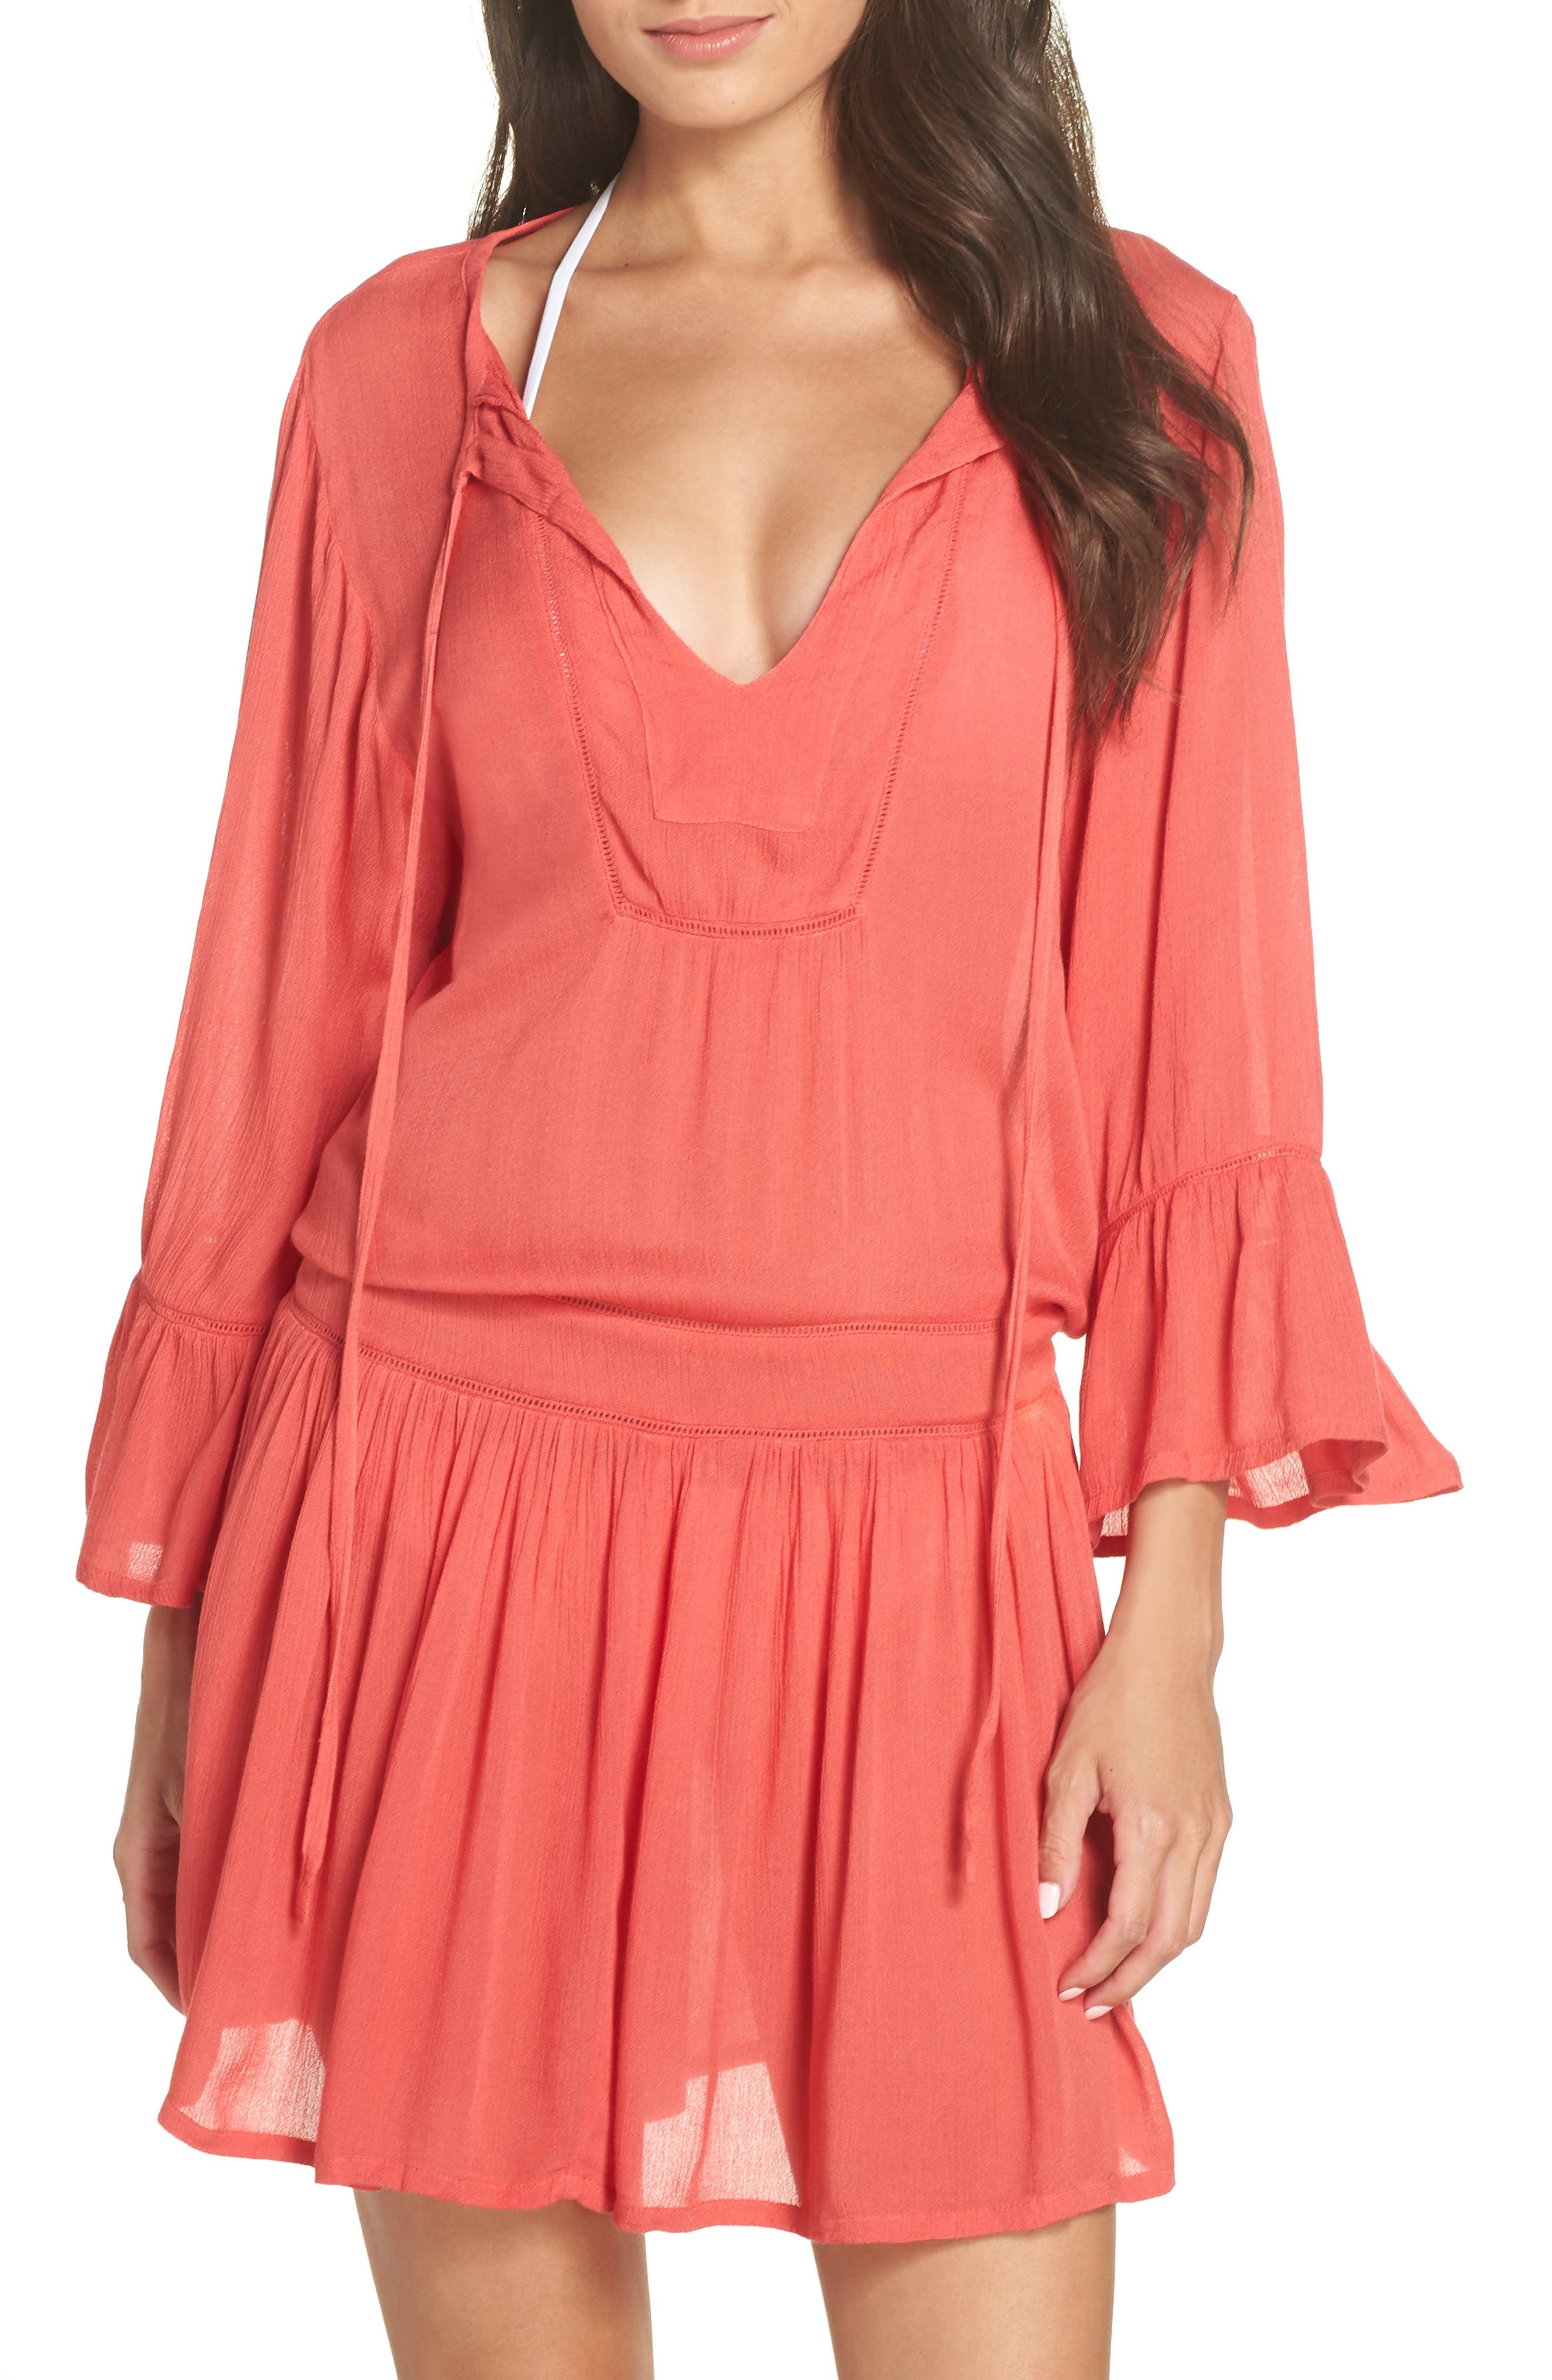 VIX SWIMWEAR Agatha Cover-Up Dress in Coral